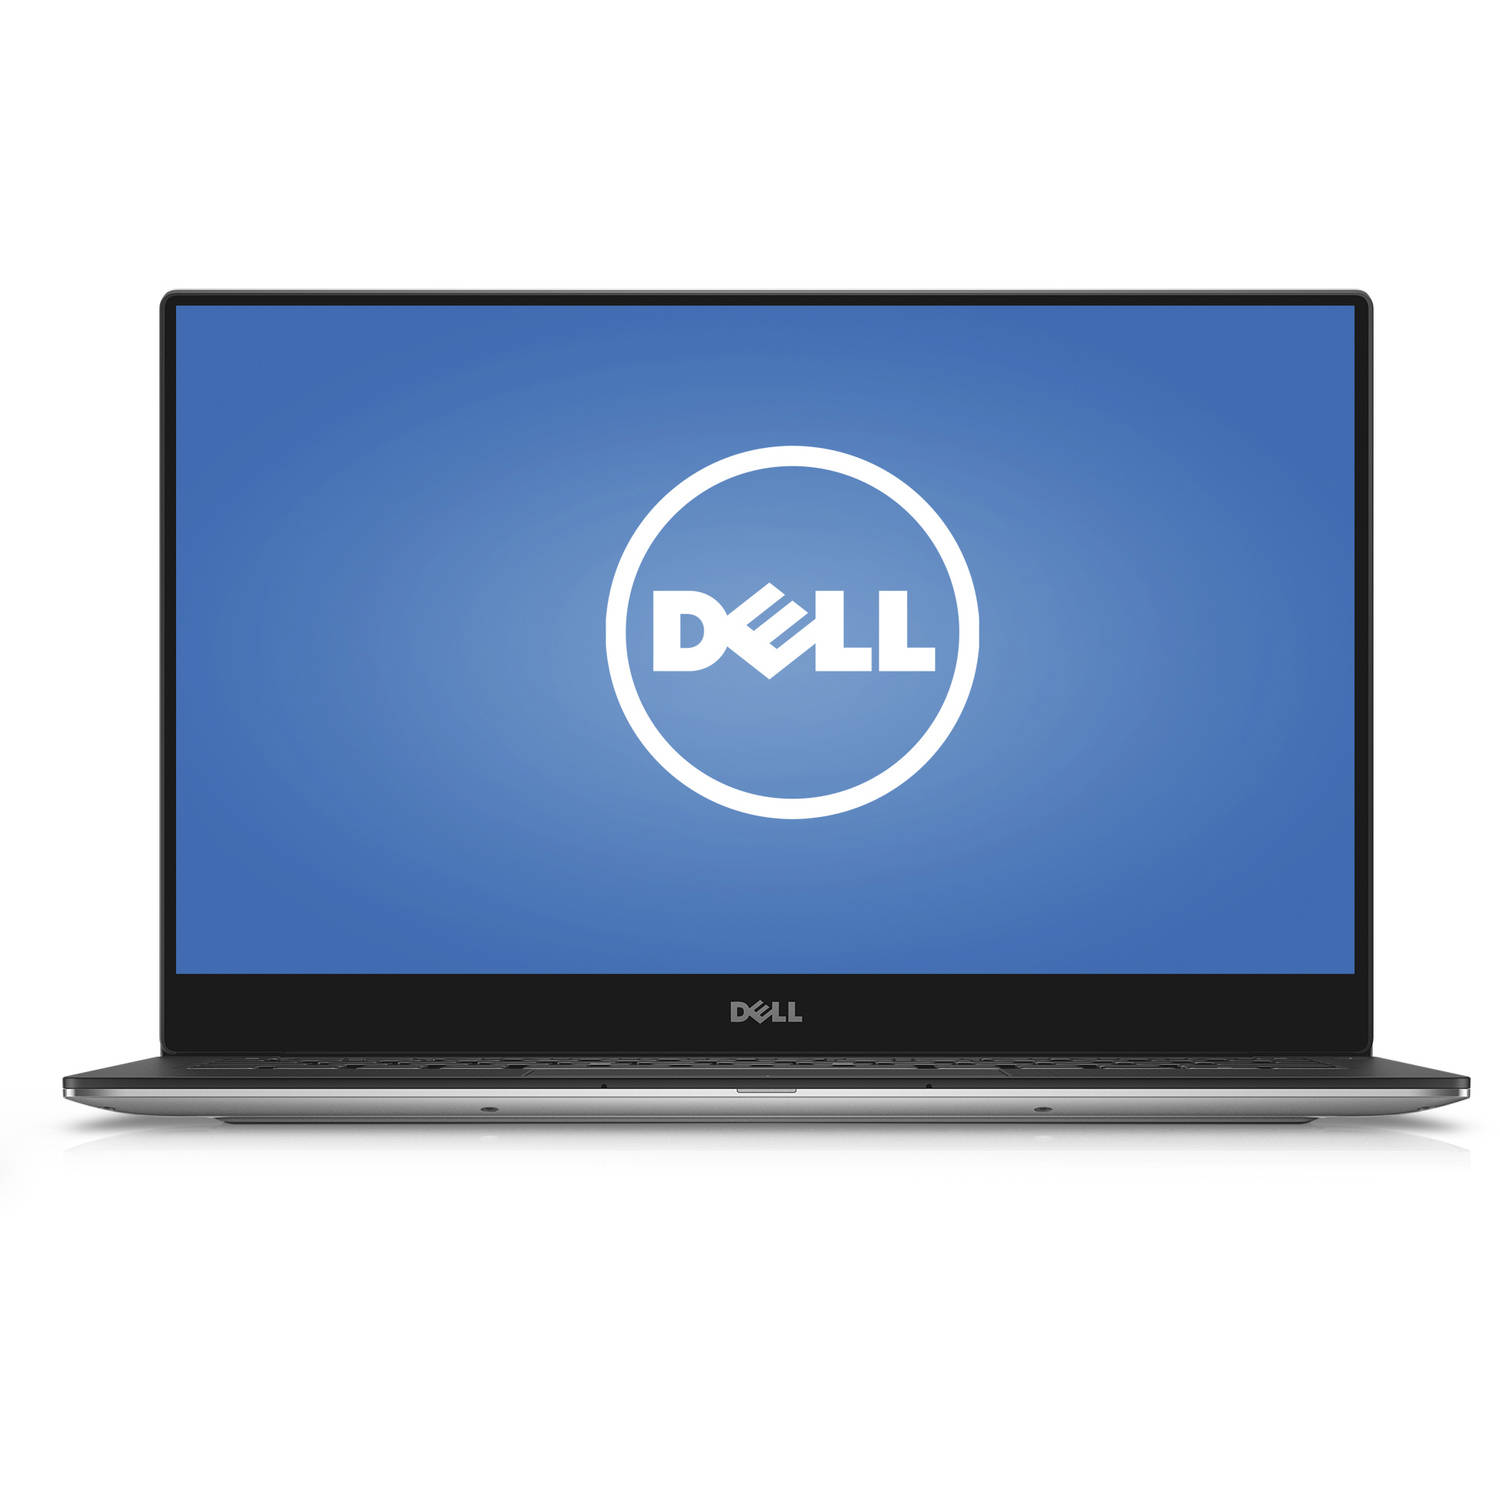 """Dell Xps 13, 13.3"""" Fhd Notebook, Windows"""